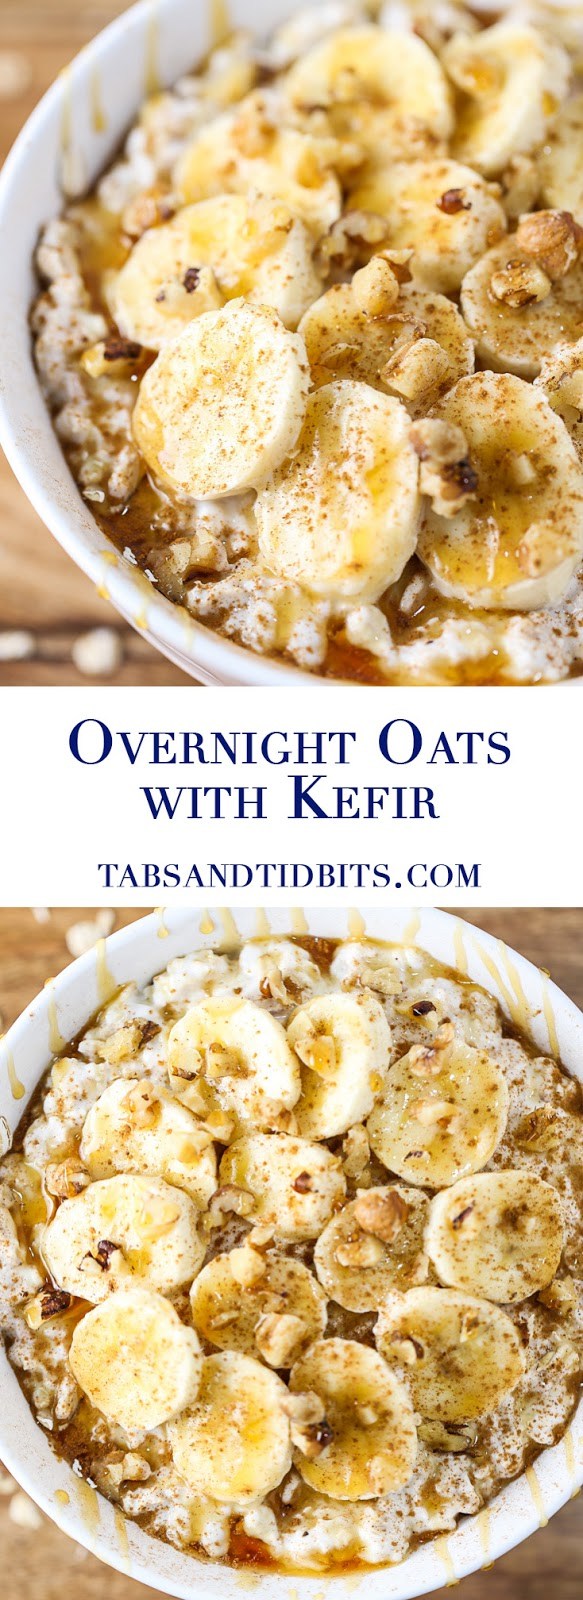 OVERNIGHT OATS WITH KEFIR RECIPES